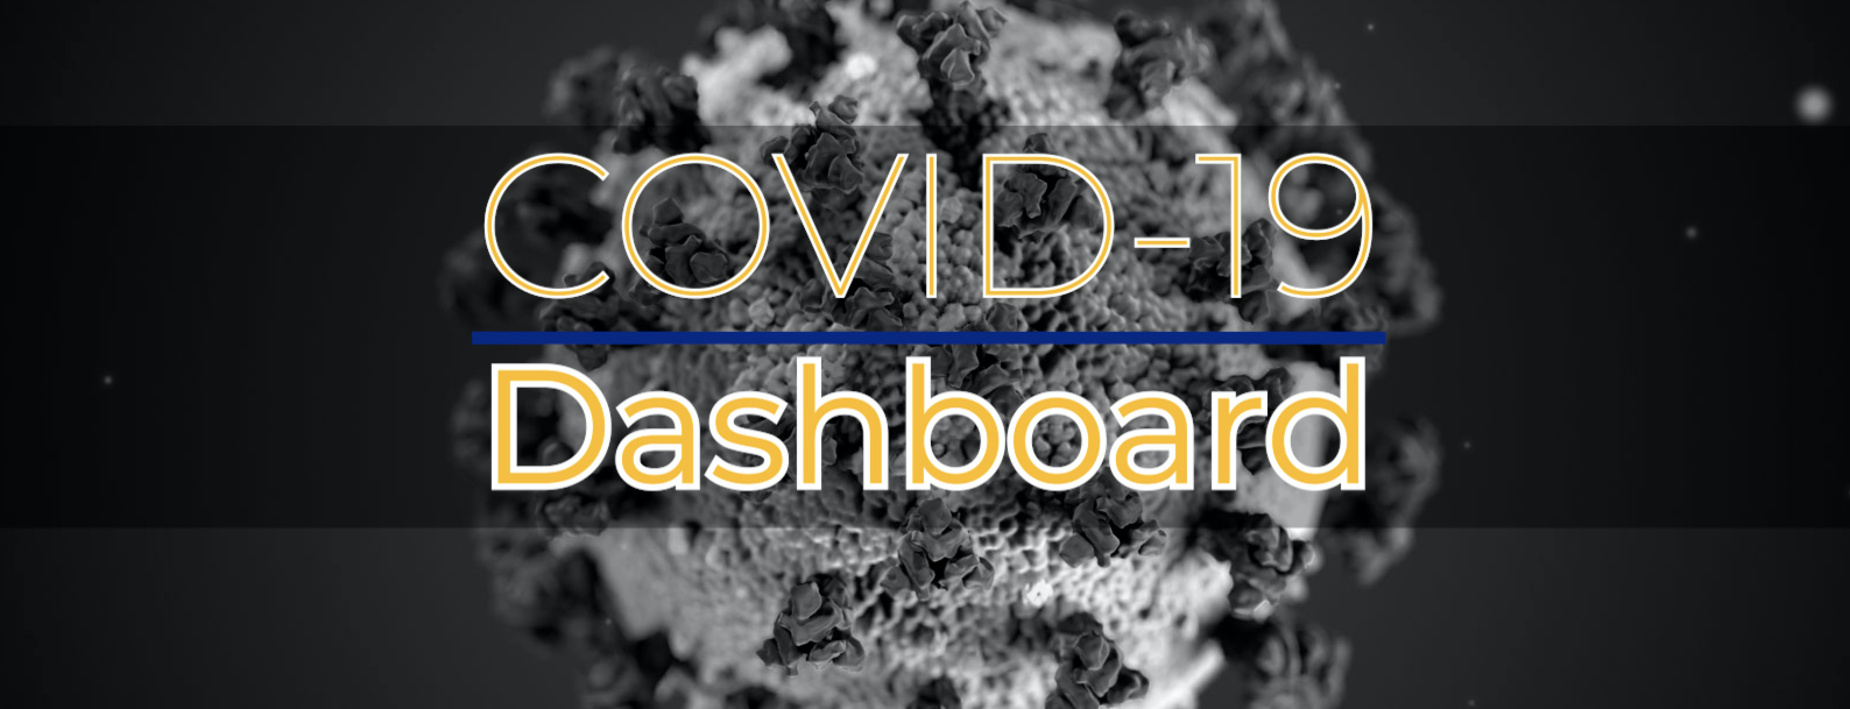 COVID19DSSHBOARD